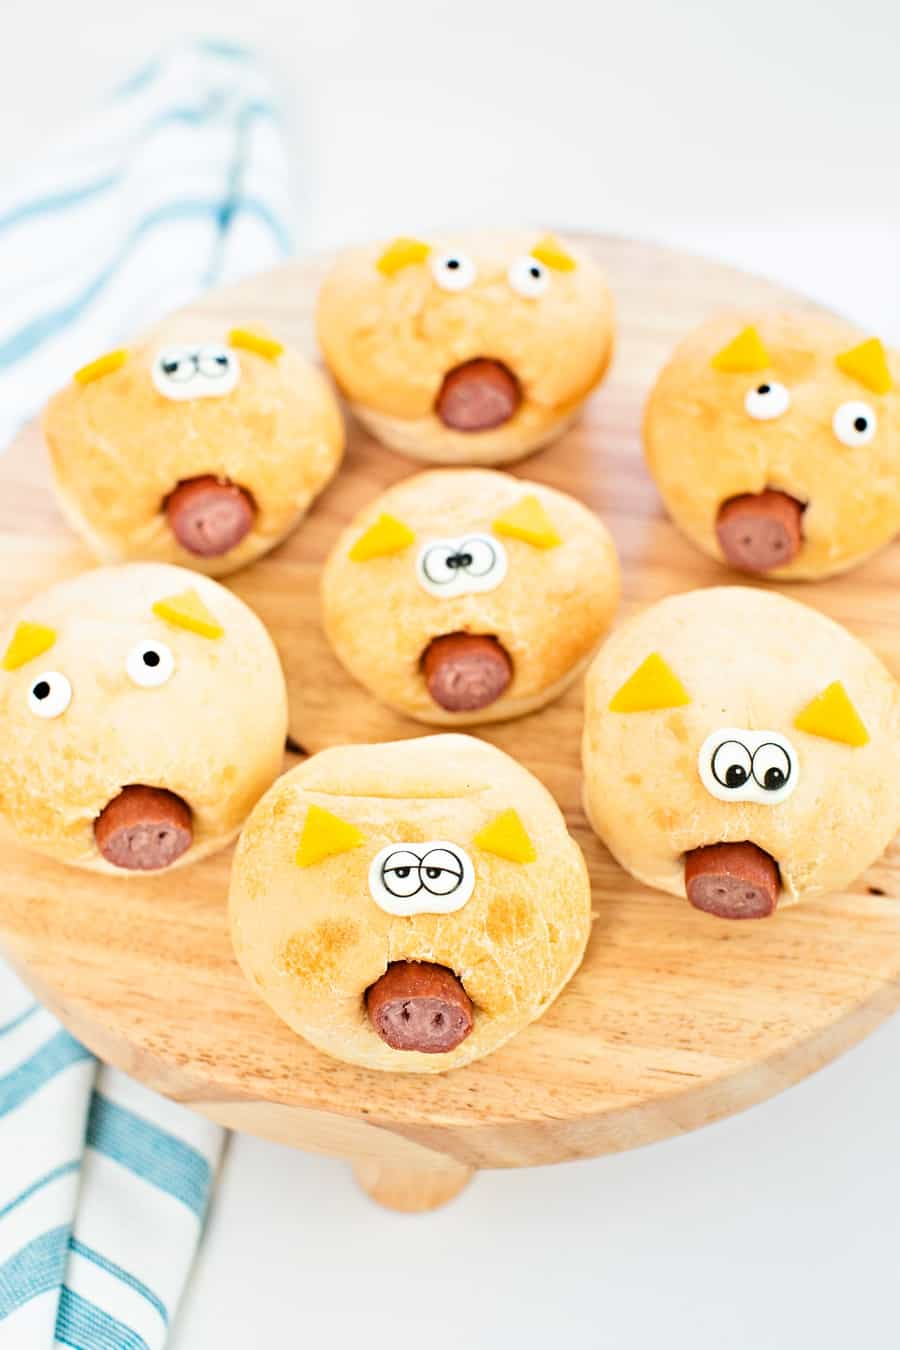 how to make easy pigs in a blanket in a bread roll